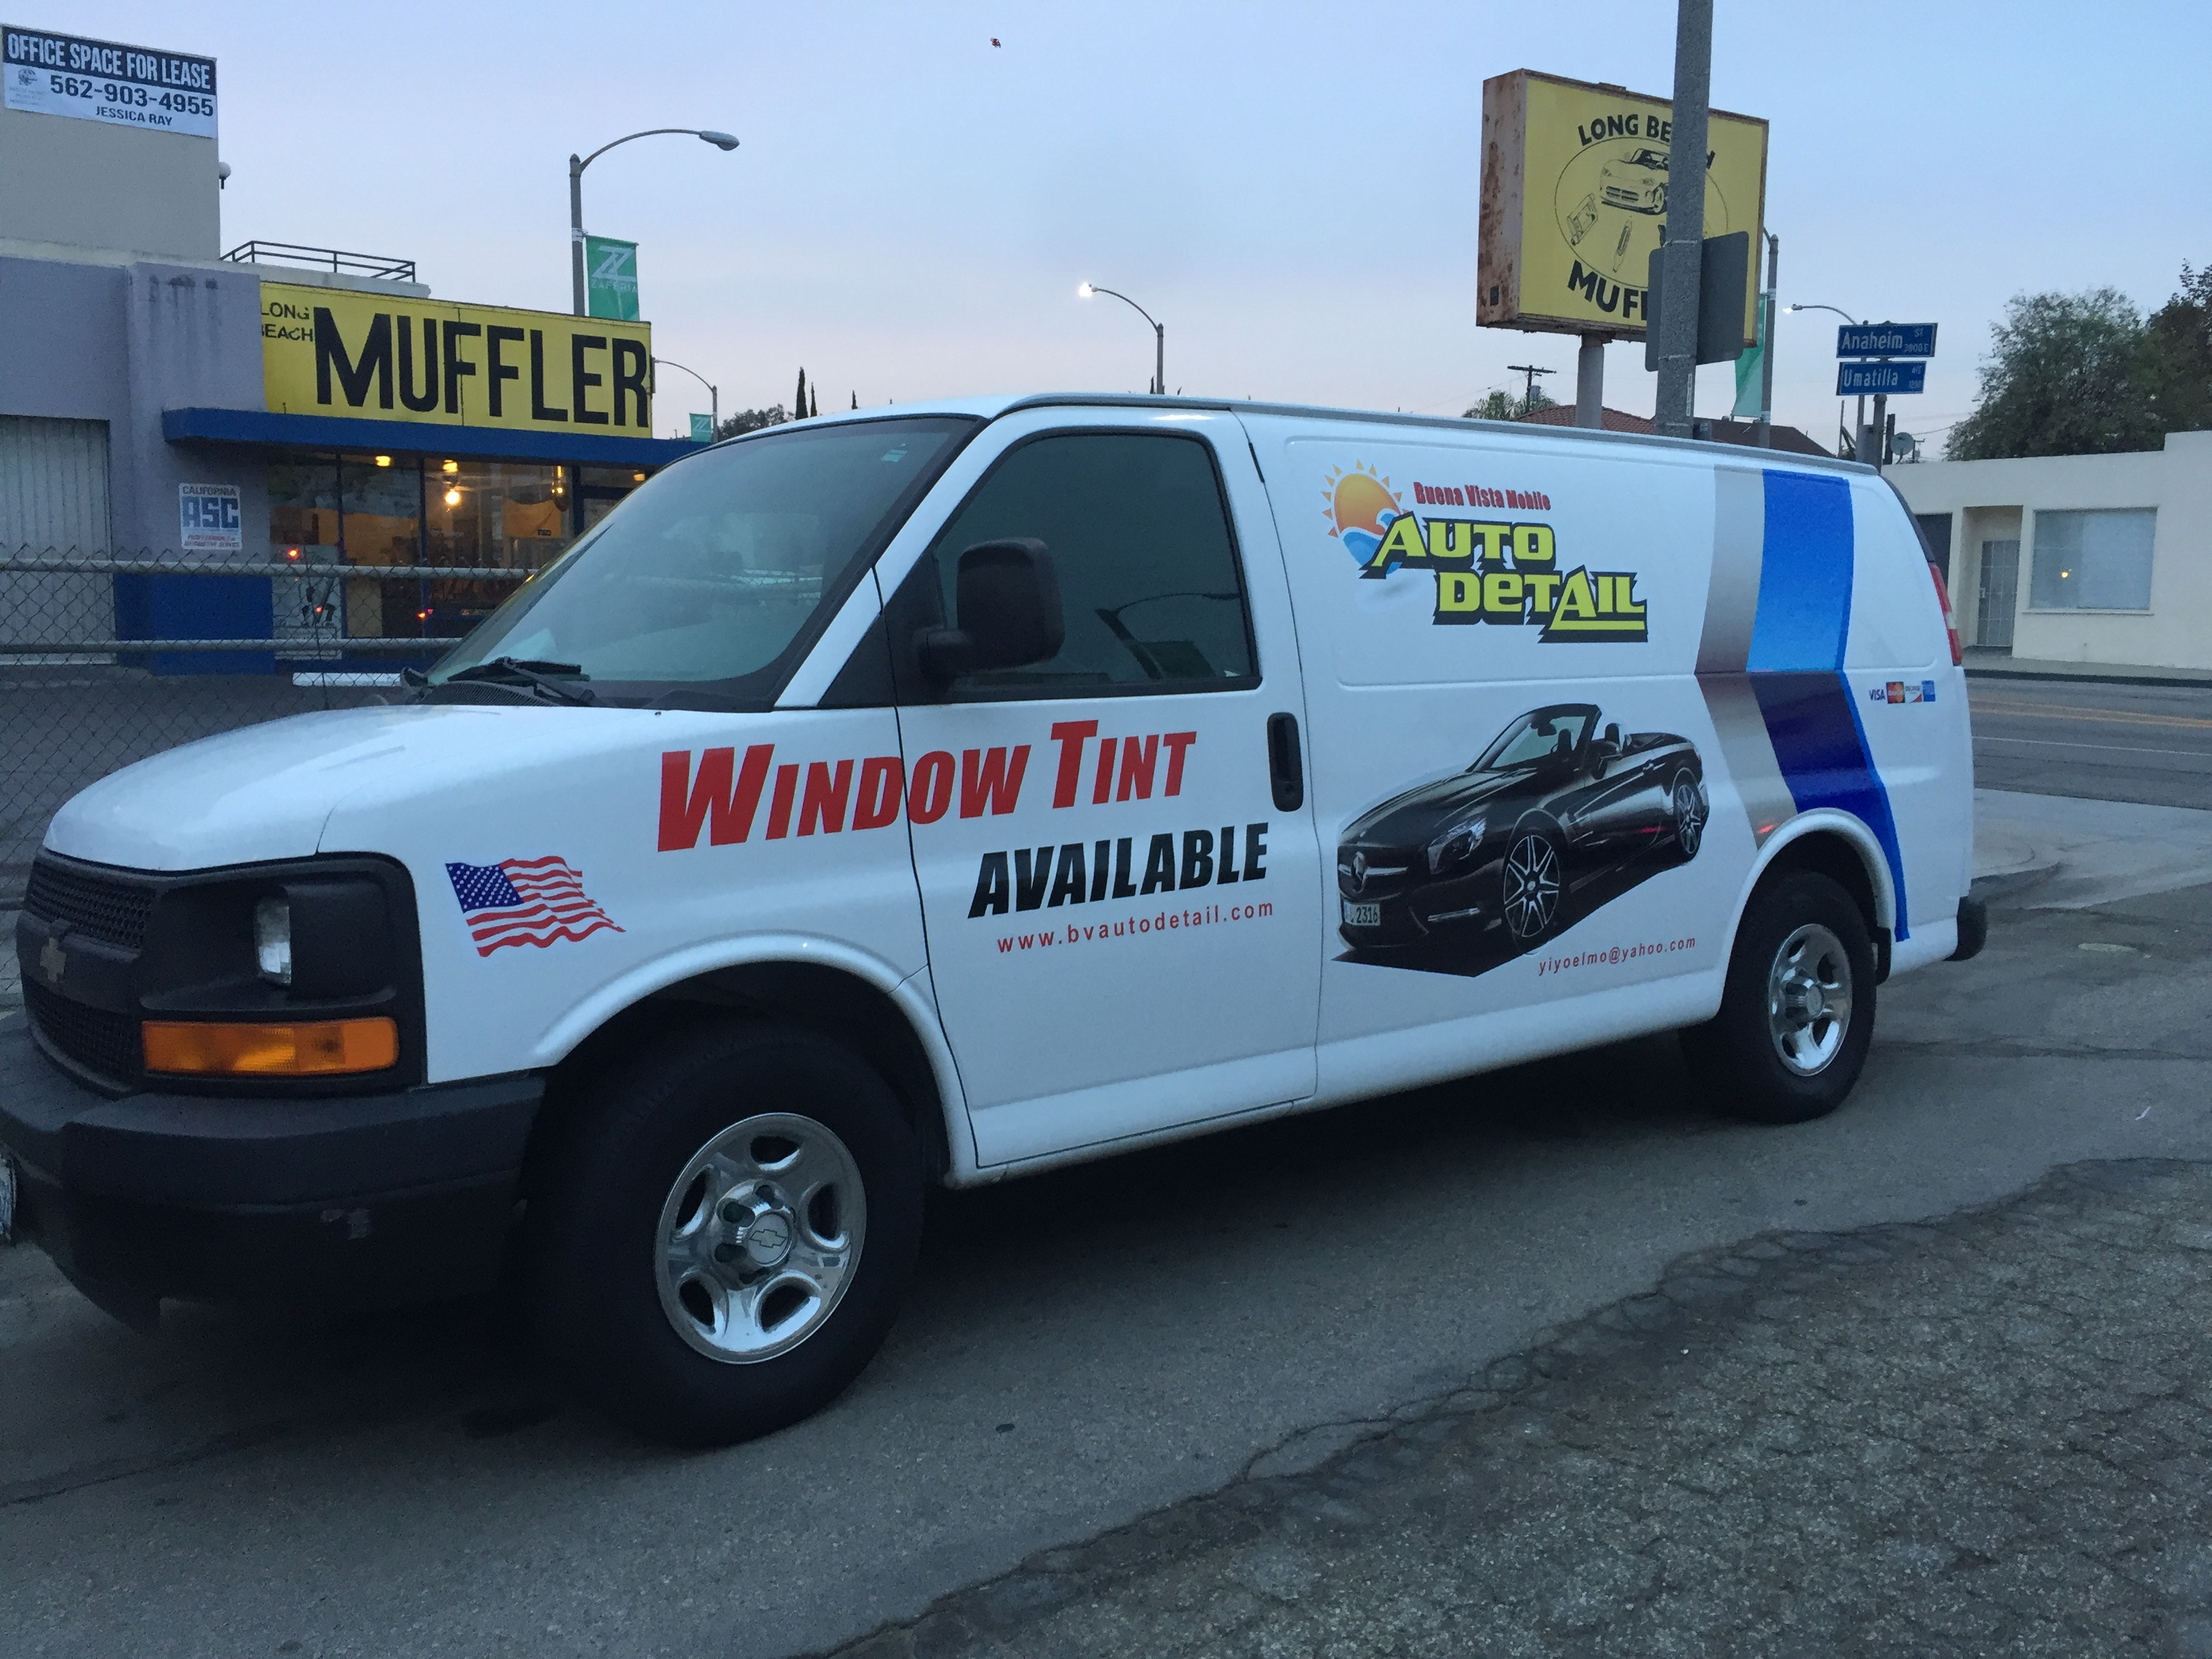 Window Tint Available